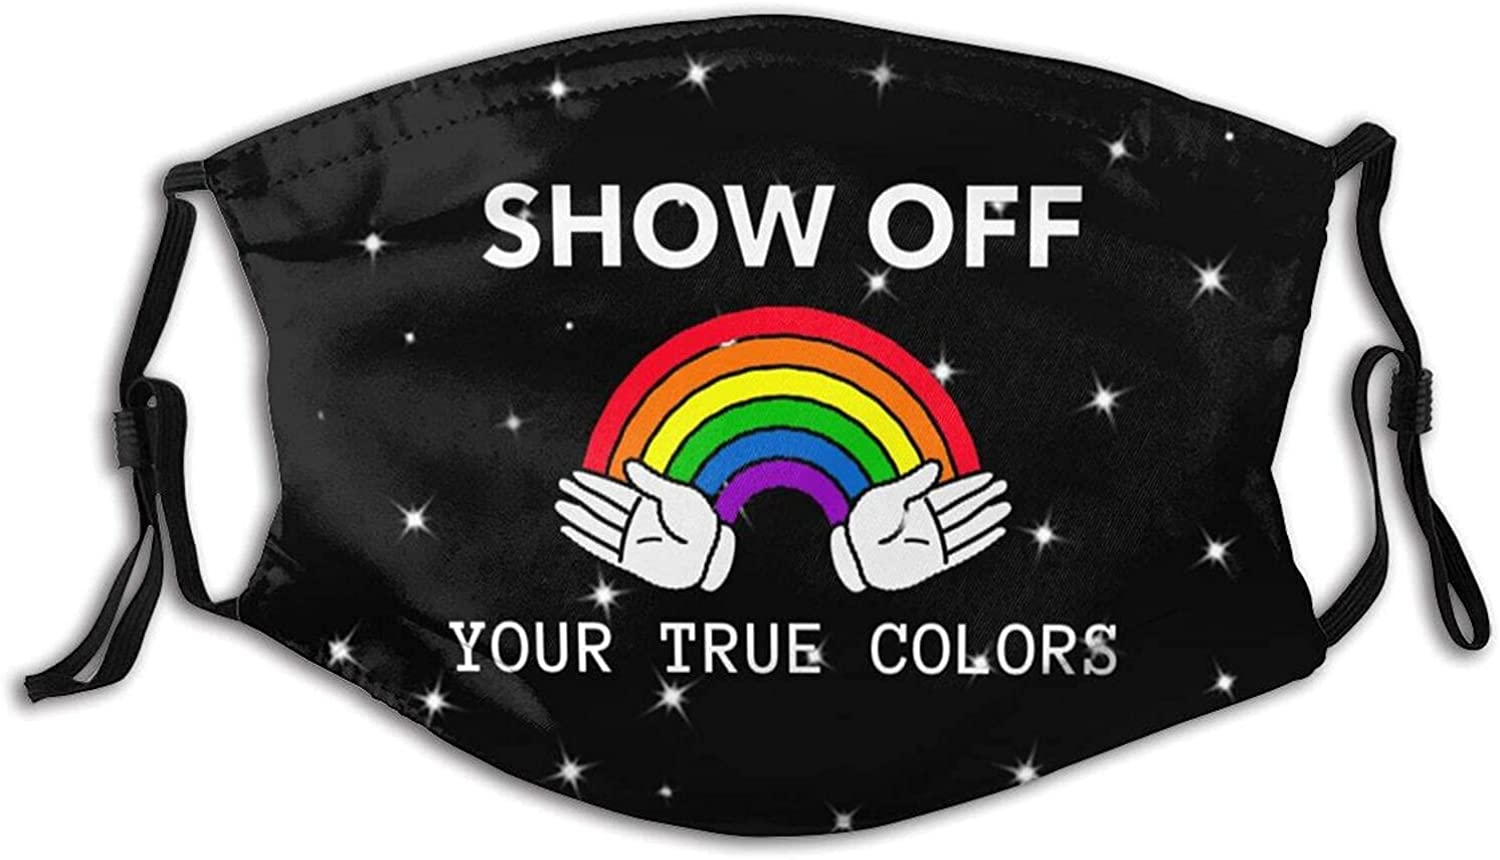 Rainbow Flag Show Off Your True Colors Face Mask, Reusable Washable Cloth Anti Dust Cloth Bandanas Breathable Balaclava for Dust Outdoors Men and Women